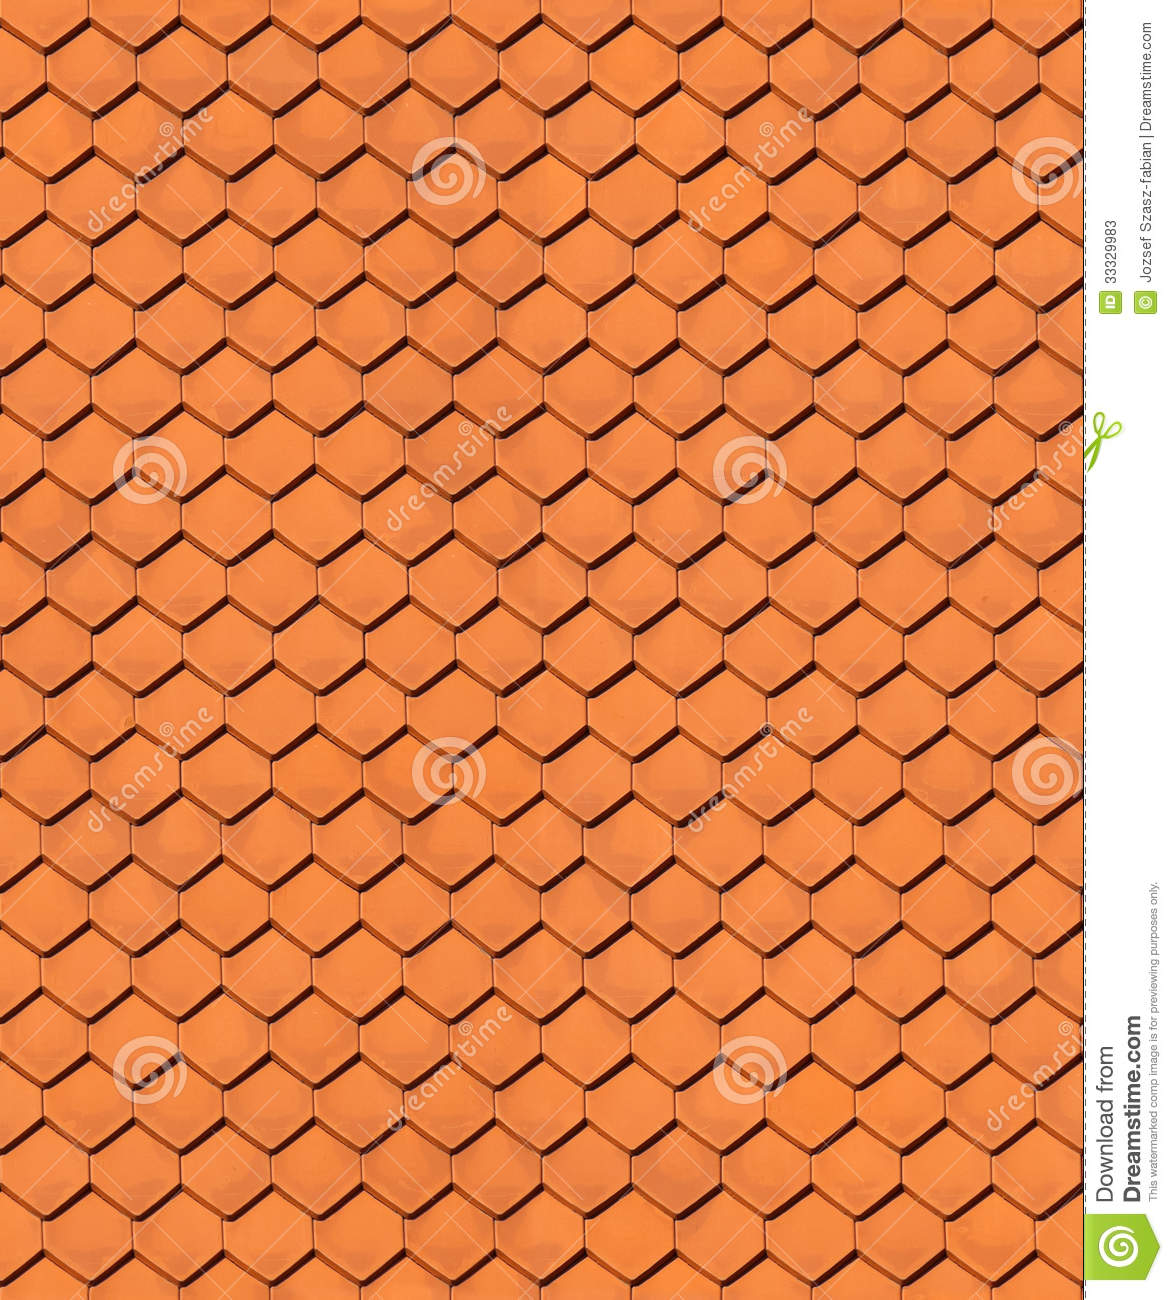 Seamless House Roof Texture Stock Photos Image 33329983